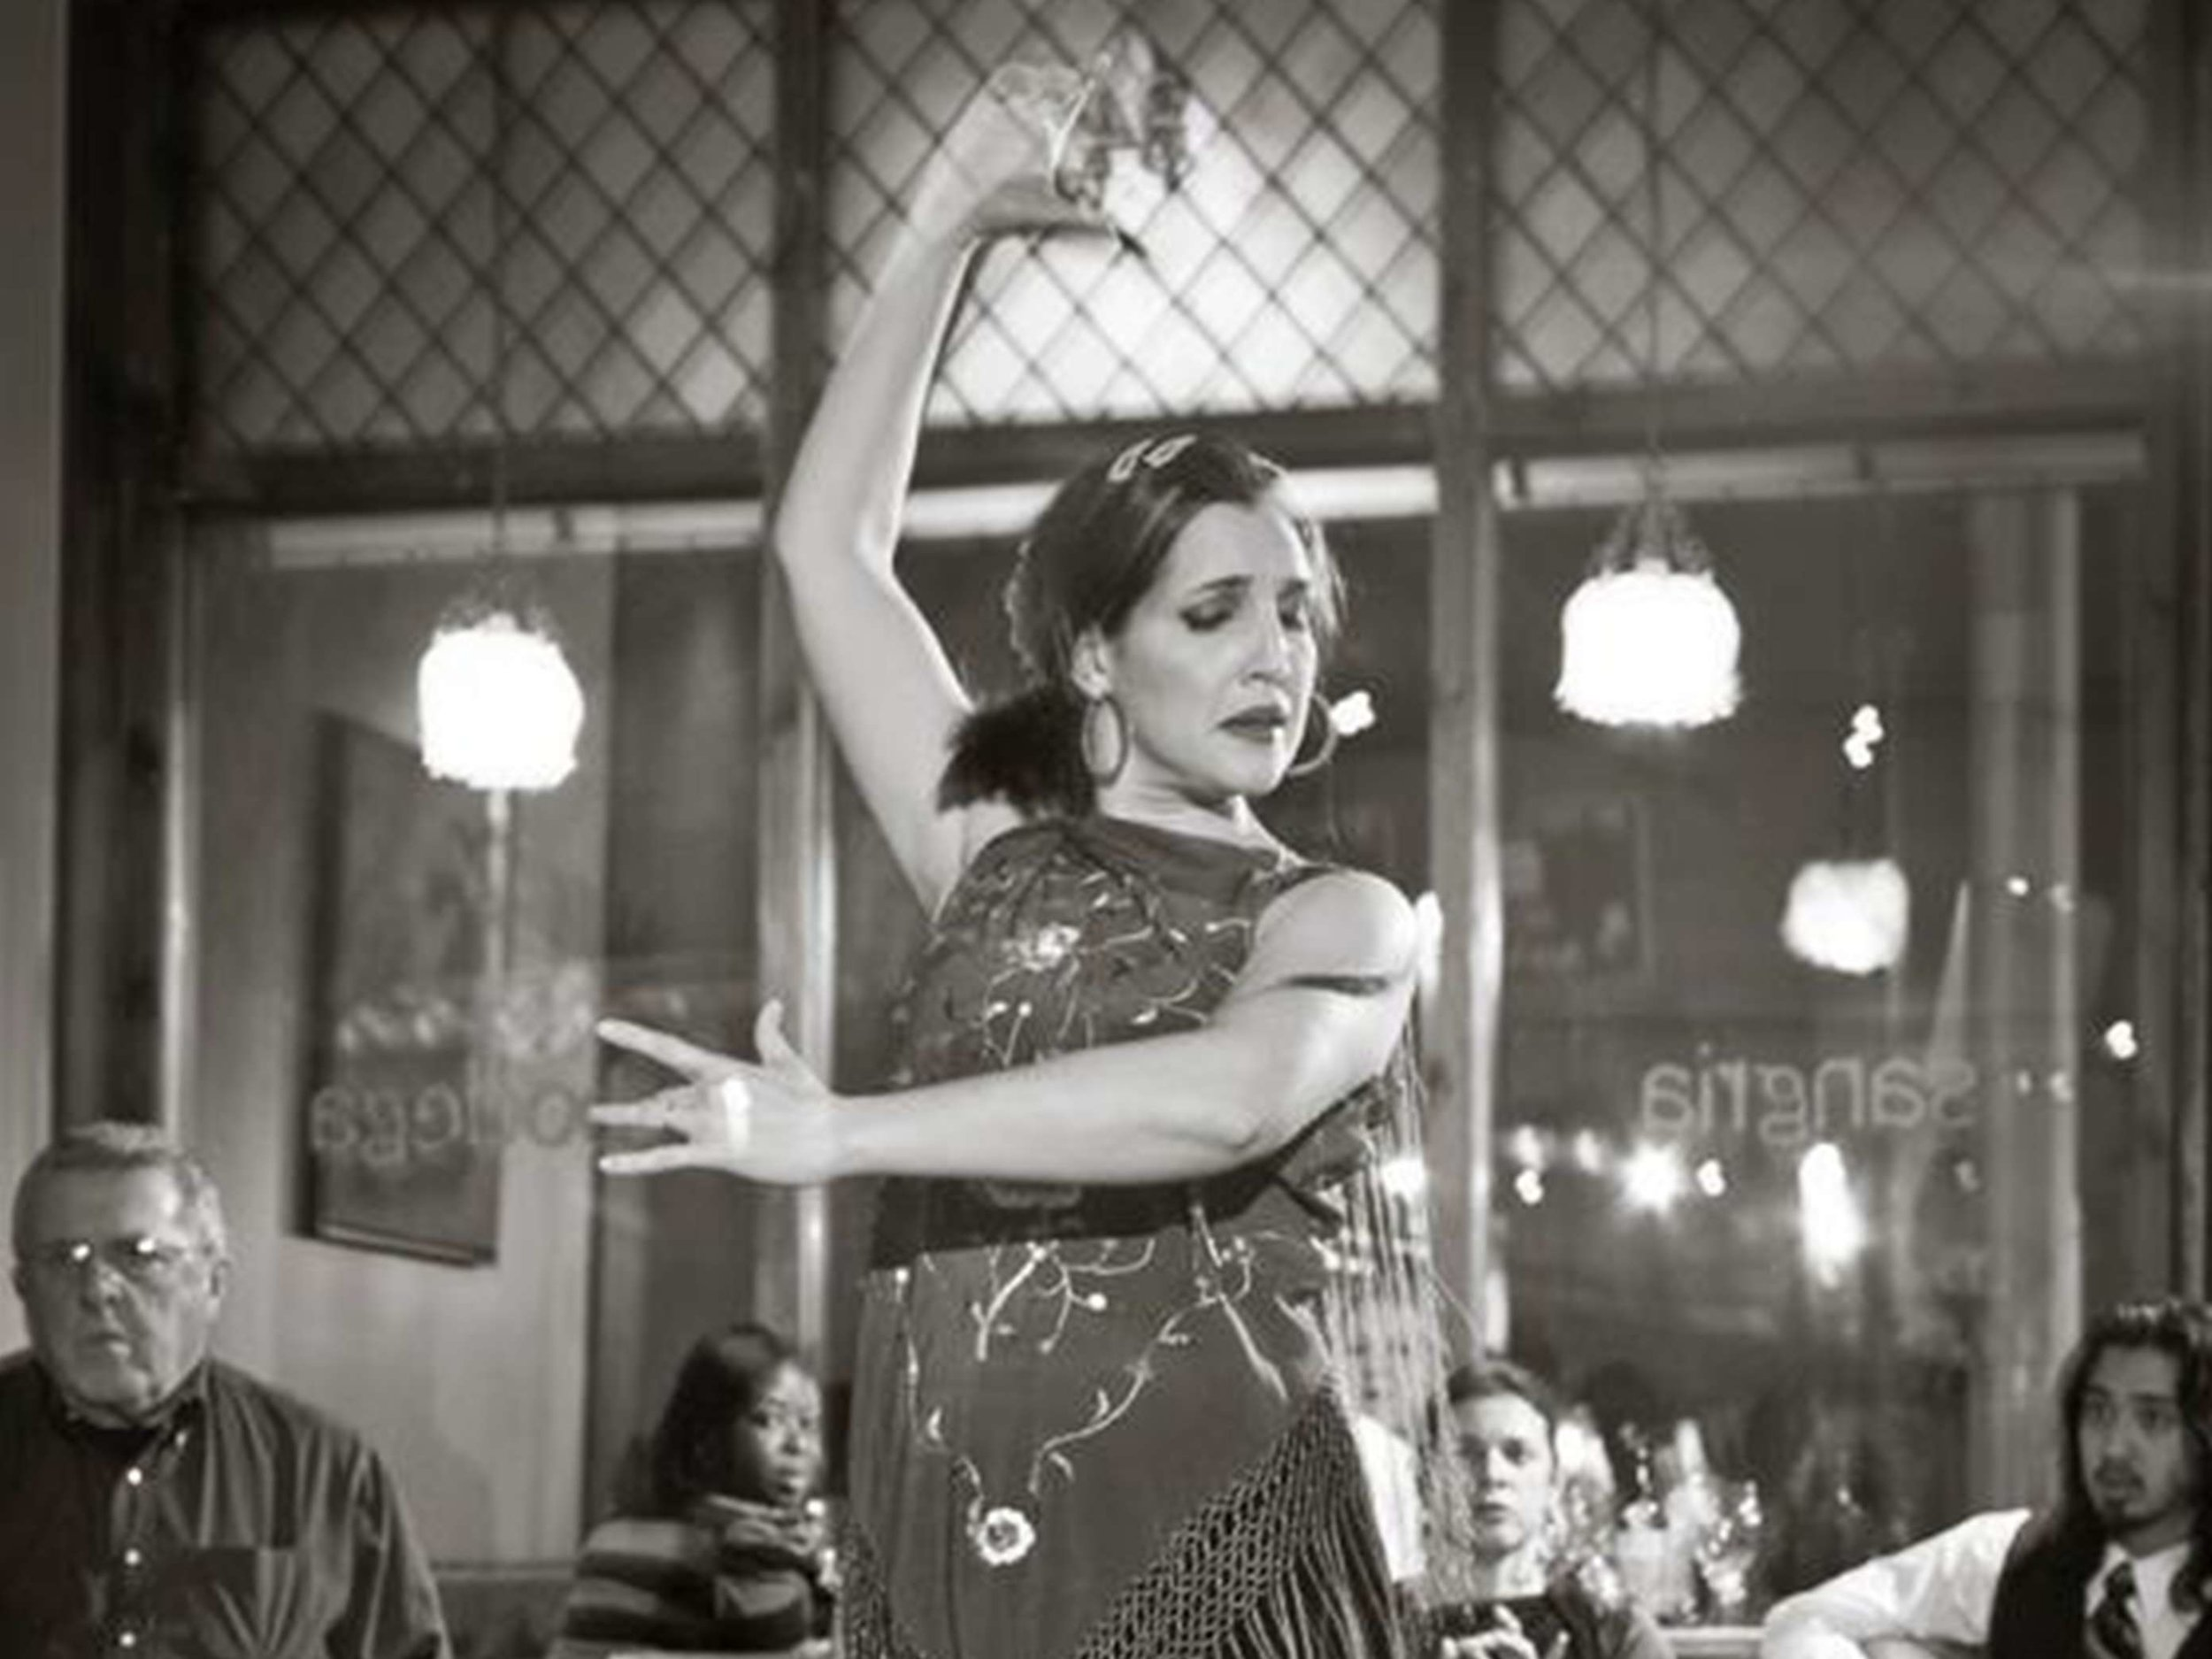 flamenco-dancer-at-spanish-party-in-boston-ma-with-harrington-events.jpg.jpg